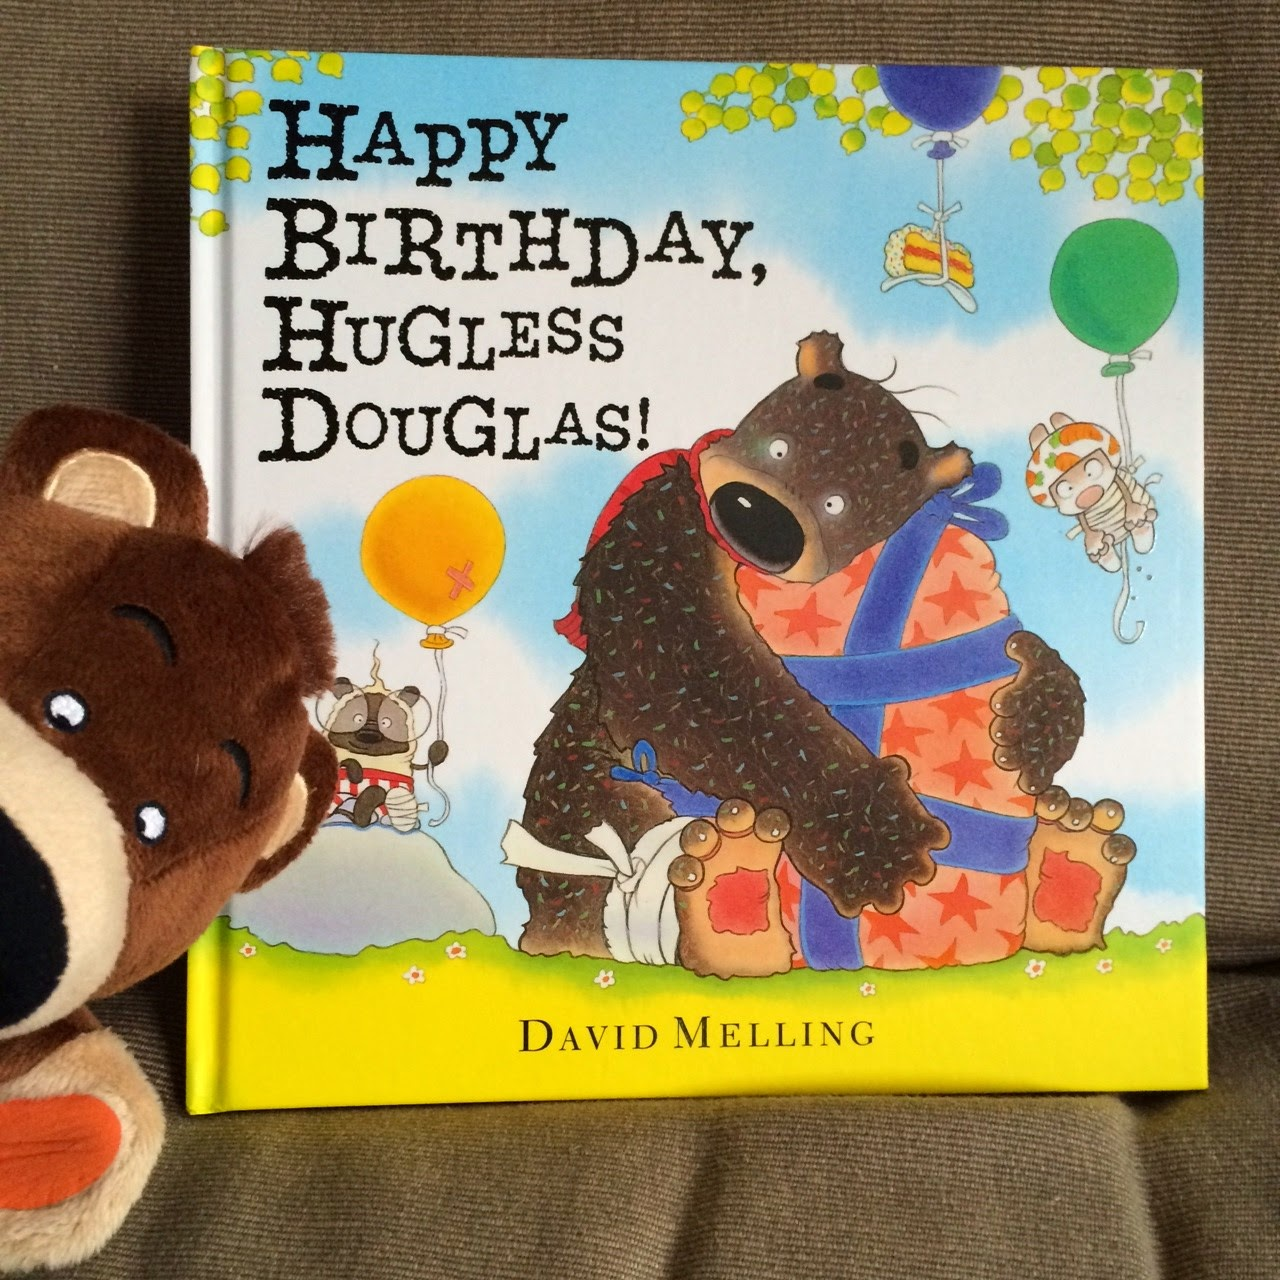 http://www.bookdepository.com/Happy-Birthday-Hugless-Douglas-David-Melling/9781444913279